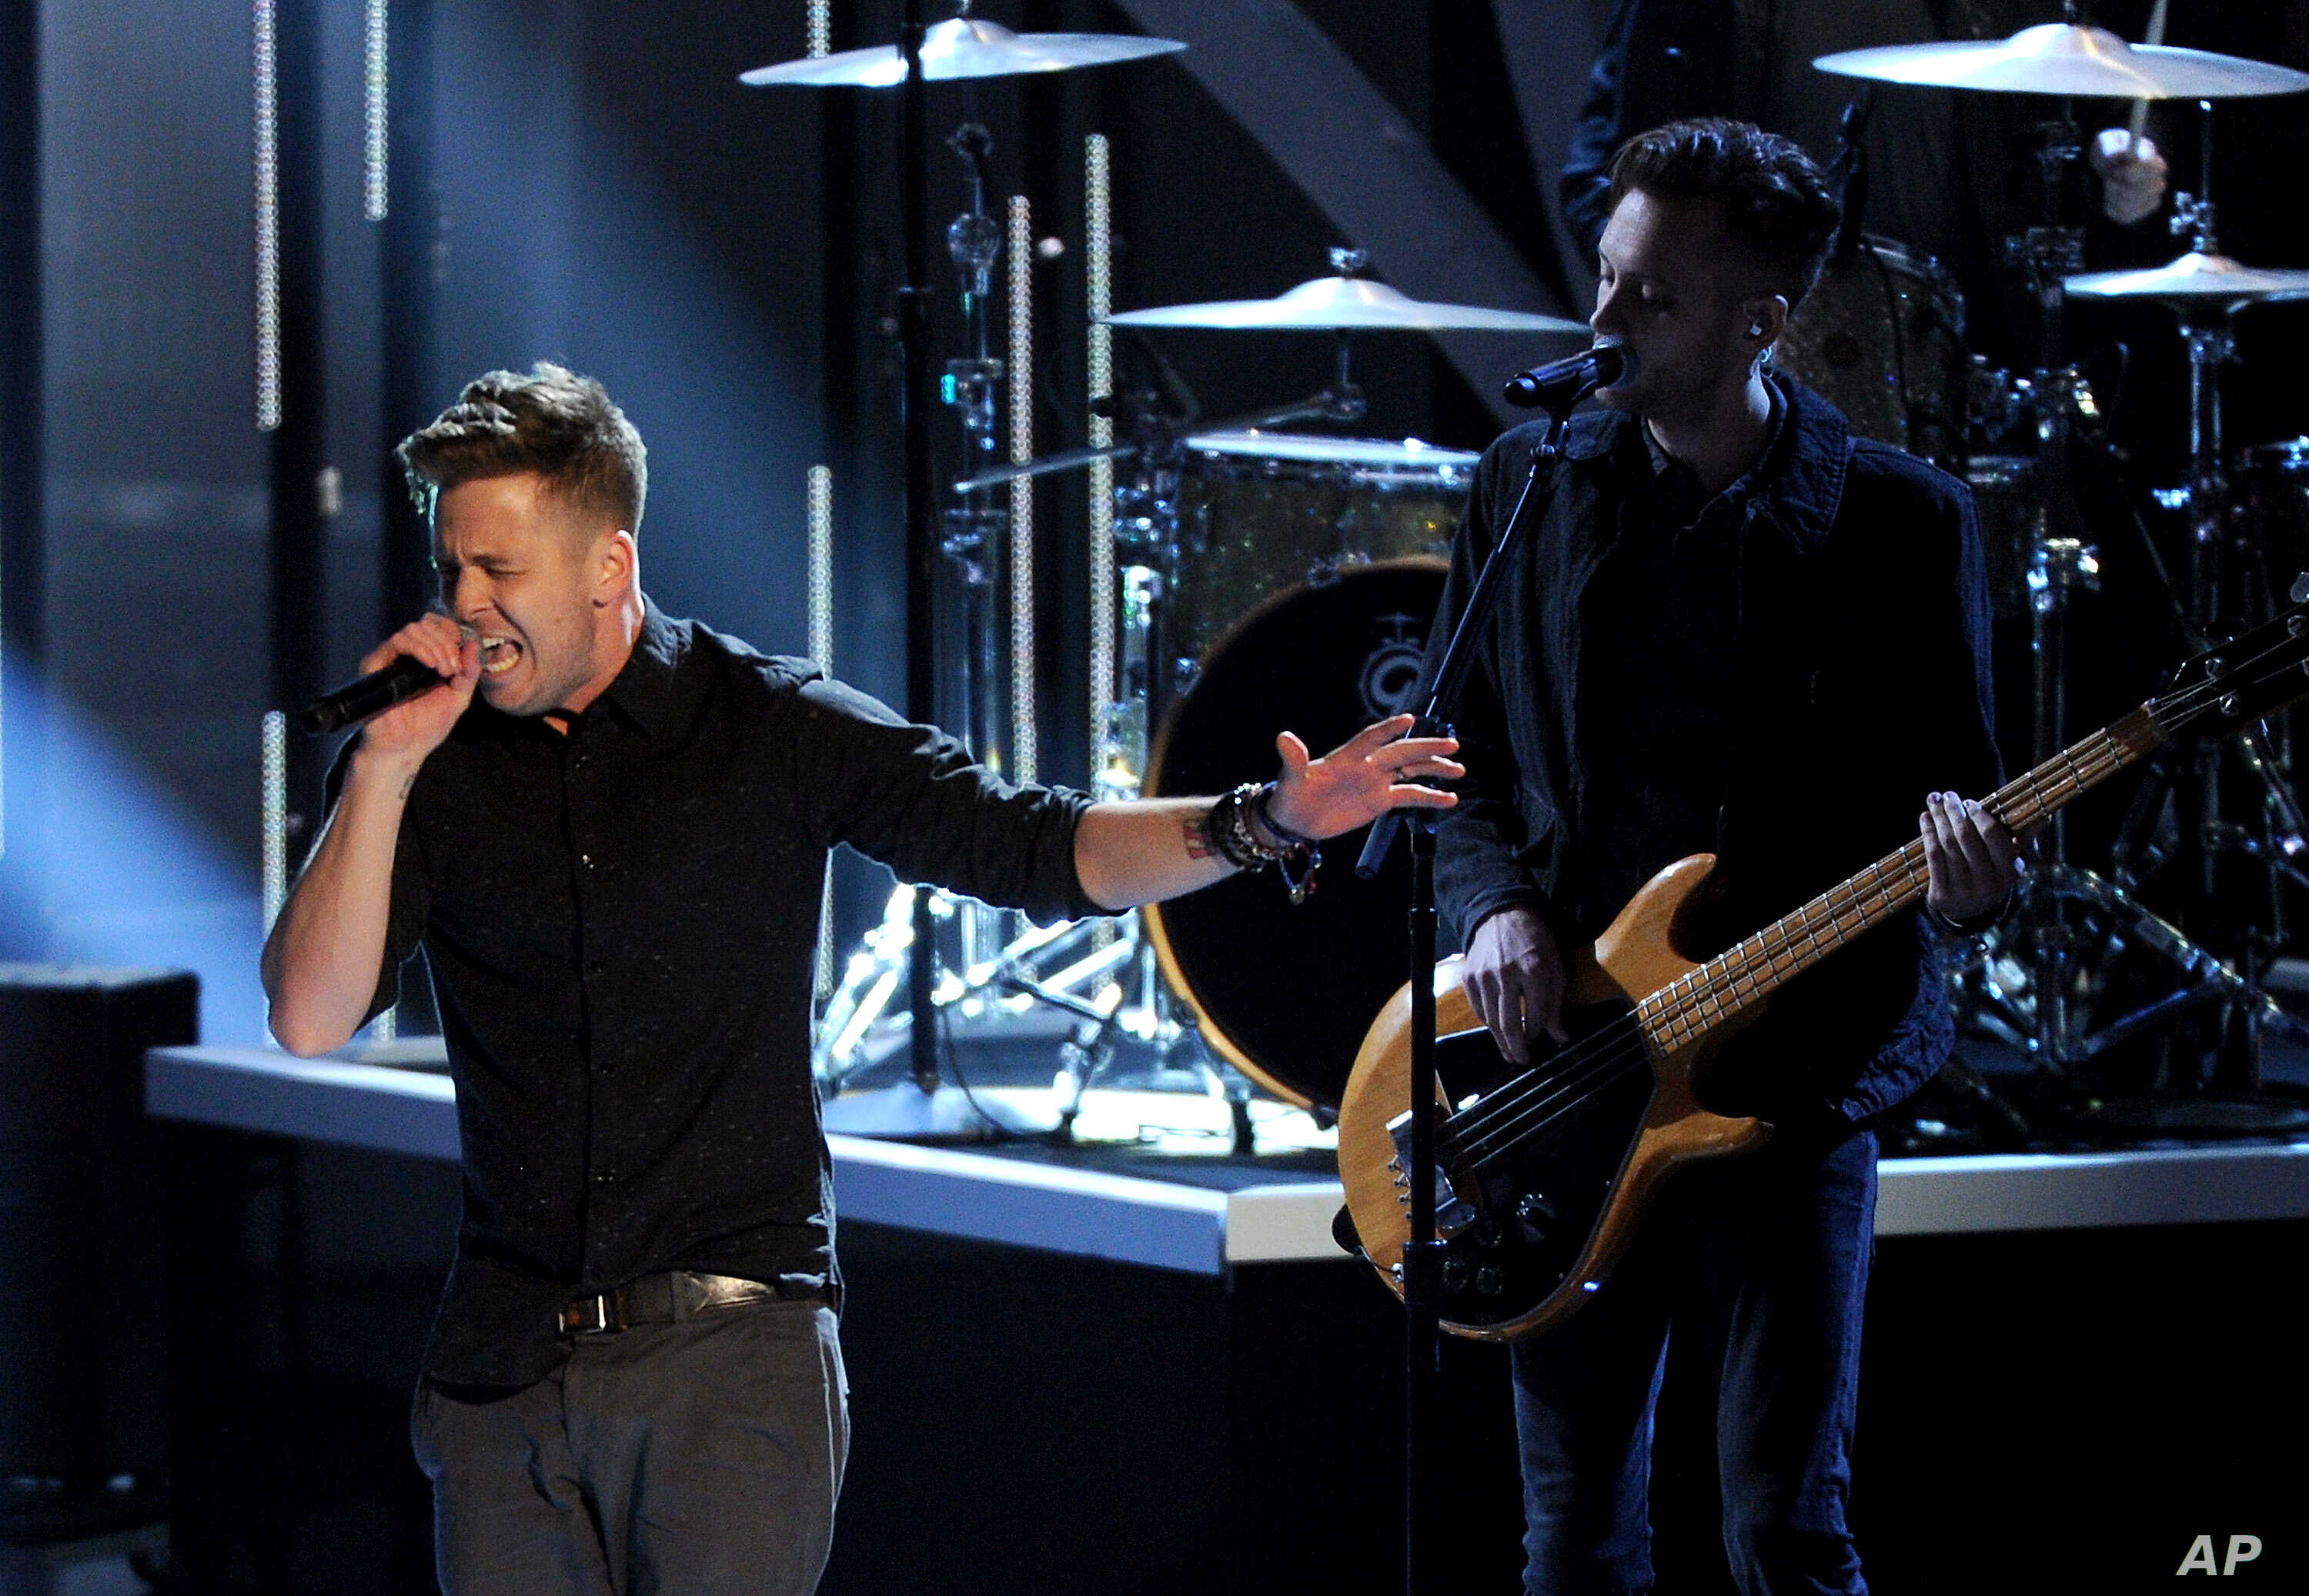 Ryan Tedder and OneRepublic perform at the 40th annual People's Choice Awards at Nokia Theatre L.A. Live, Jan. 8, 2014, in Los Angeles.